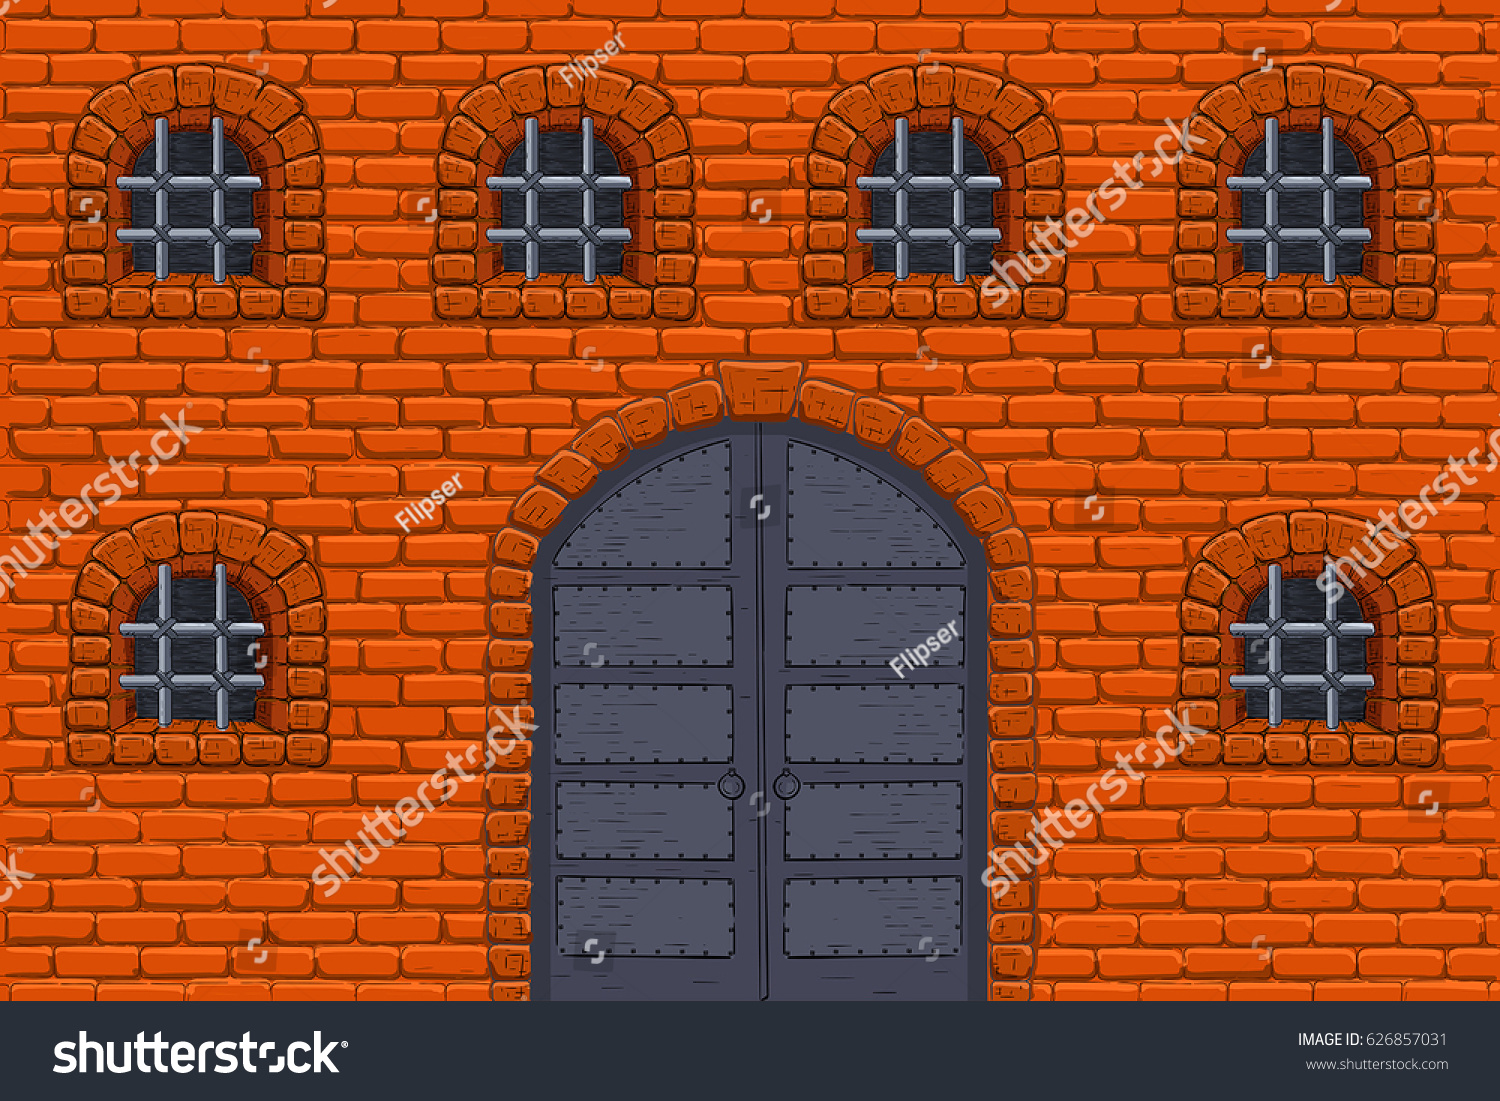 Old castle wall with barred windows and metal doors. Colored sketch. Vector illustration & Old Castle Wall Barred Windows Metal Stock Vector 626857031 ... pezcame.com